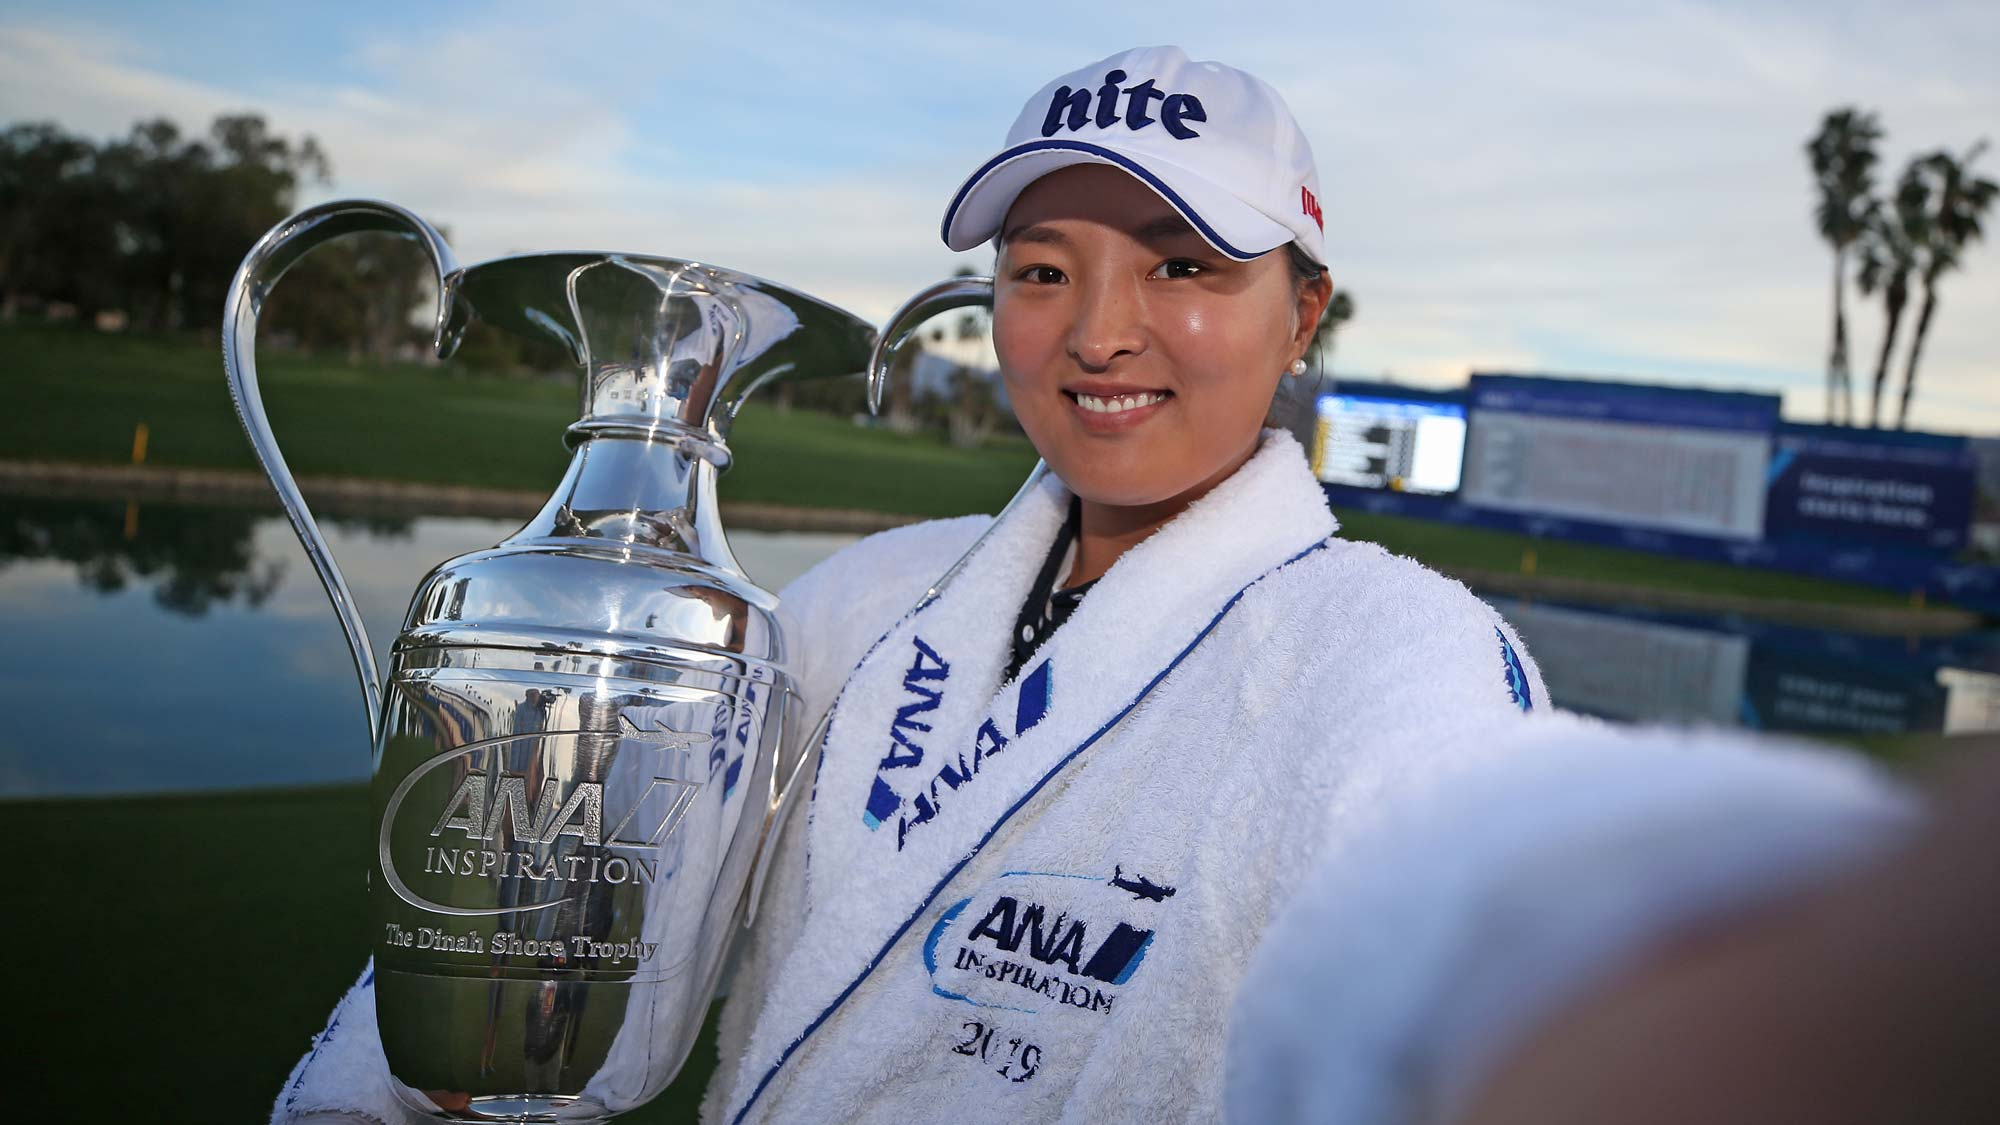 Jin Young Ko has her #BagsPacked for the 2020 Diamond Resorts Tournament of Champions after her victory at the 2019 ANA Inspiration